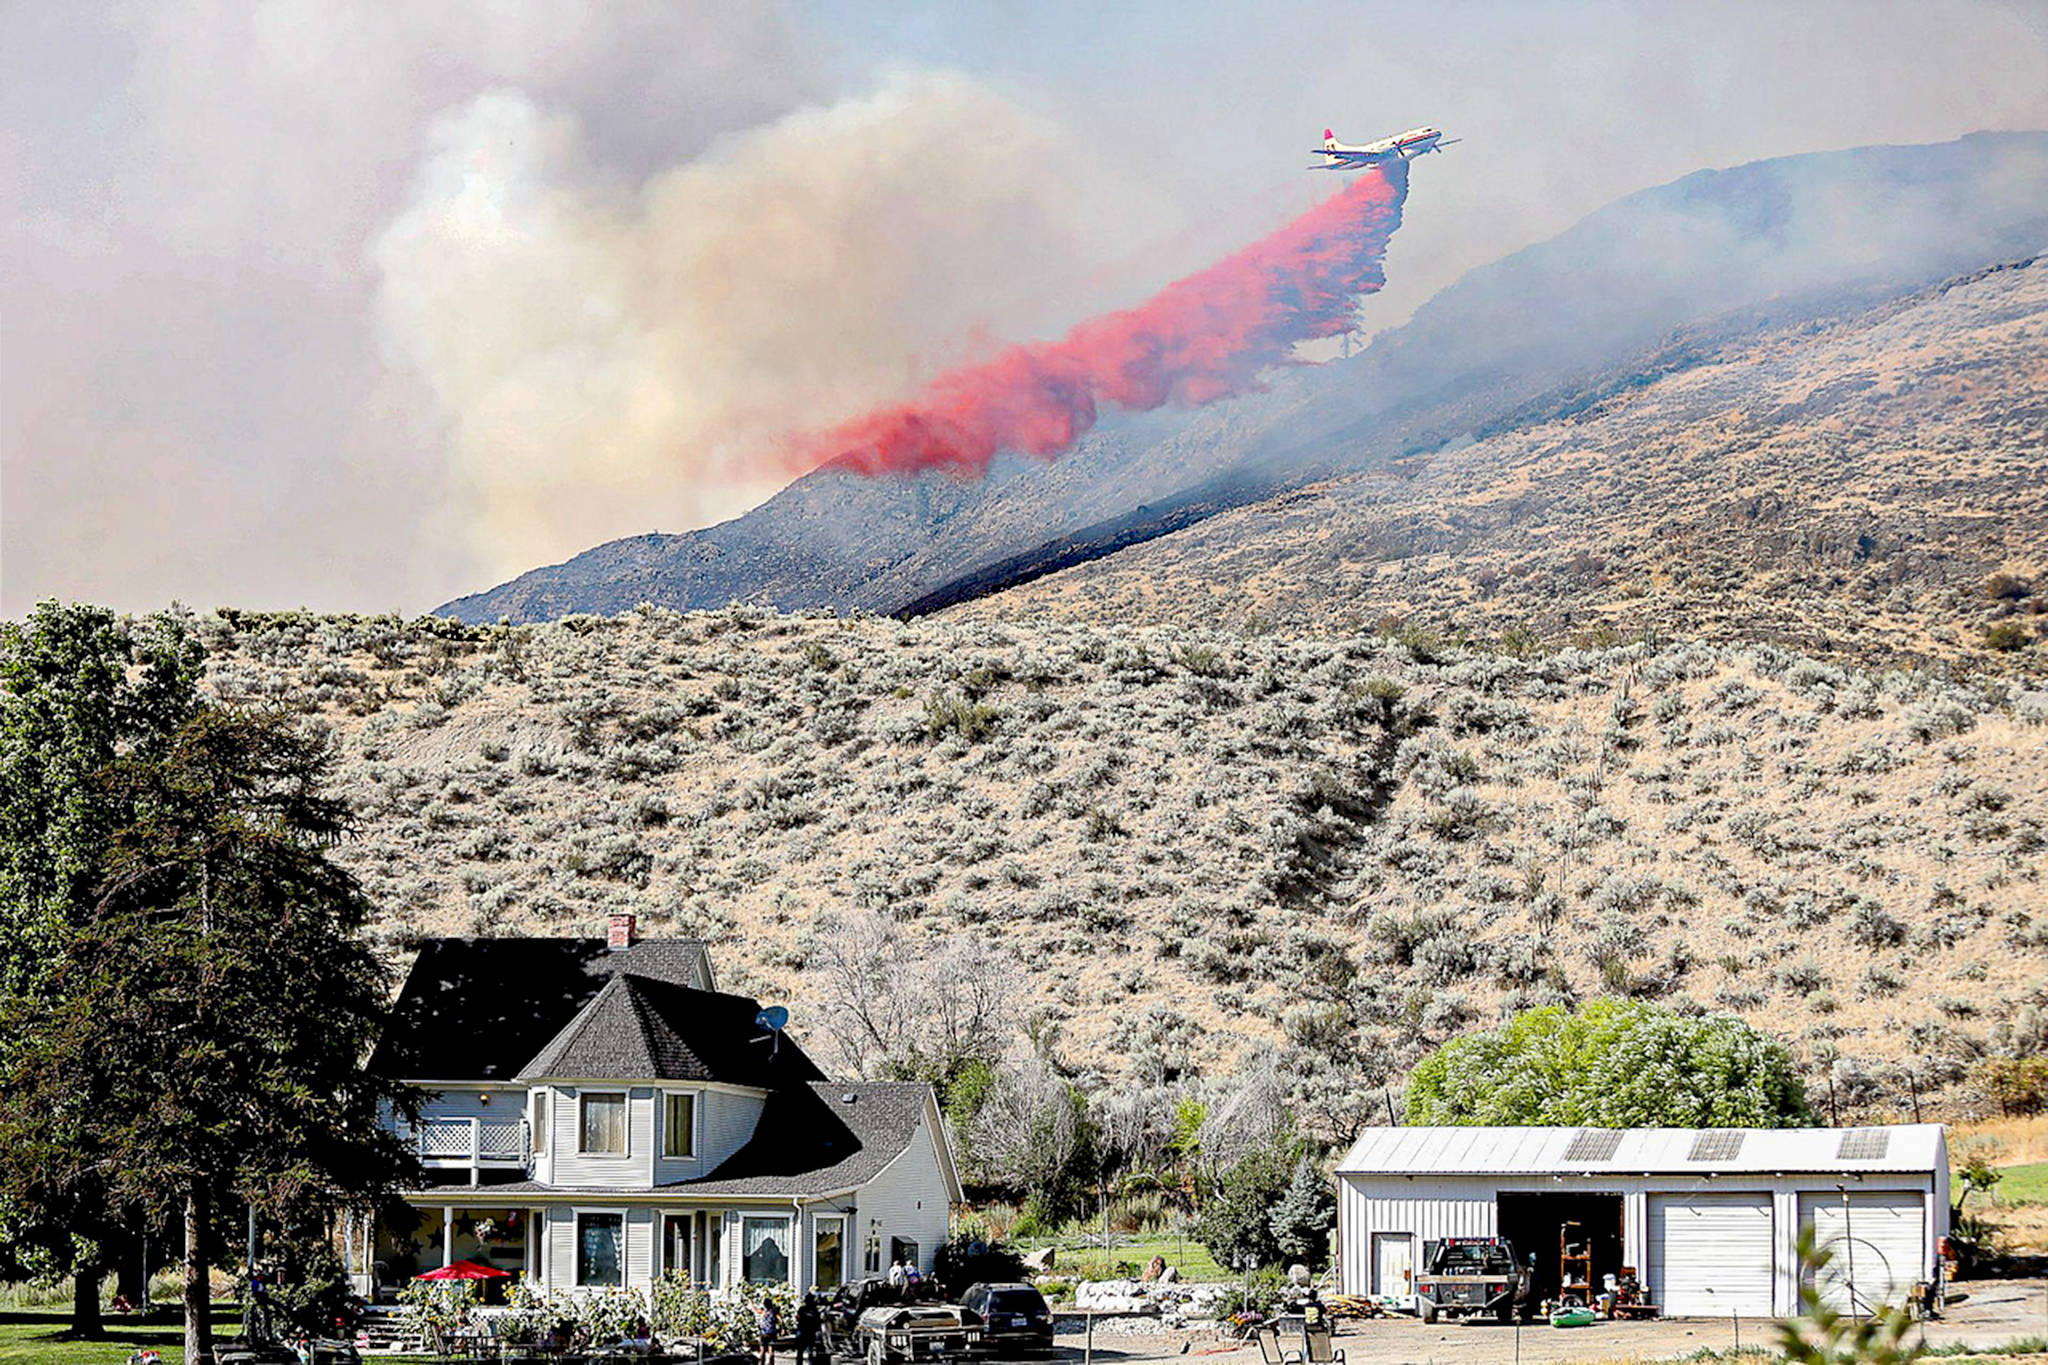 A plane drops fire retardant on the Palmer Mountain Fire last summer in north-central Washington. Laura Knowlton/Sound Publishing staff photo